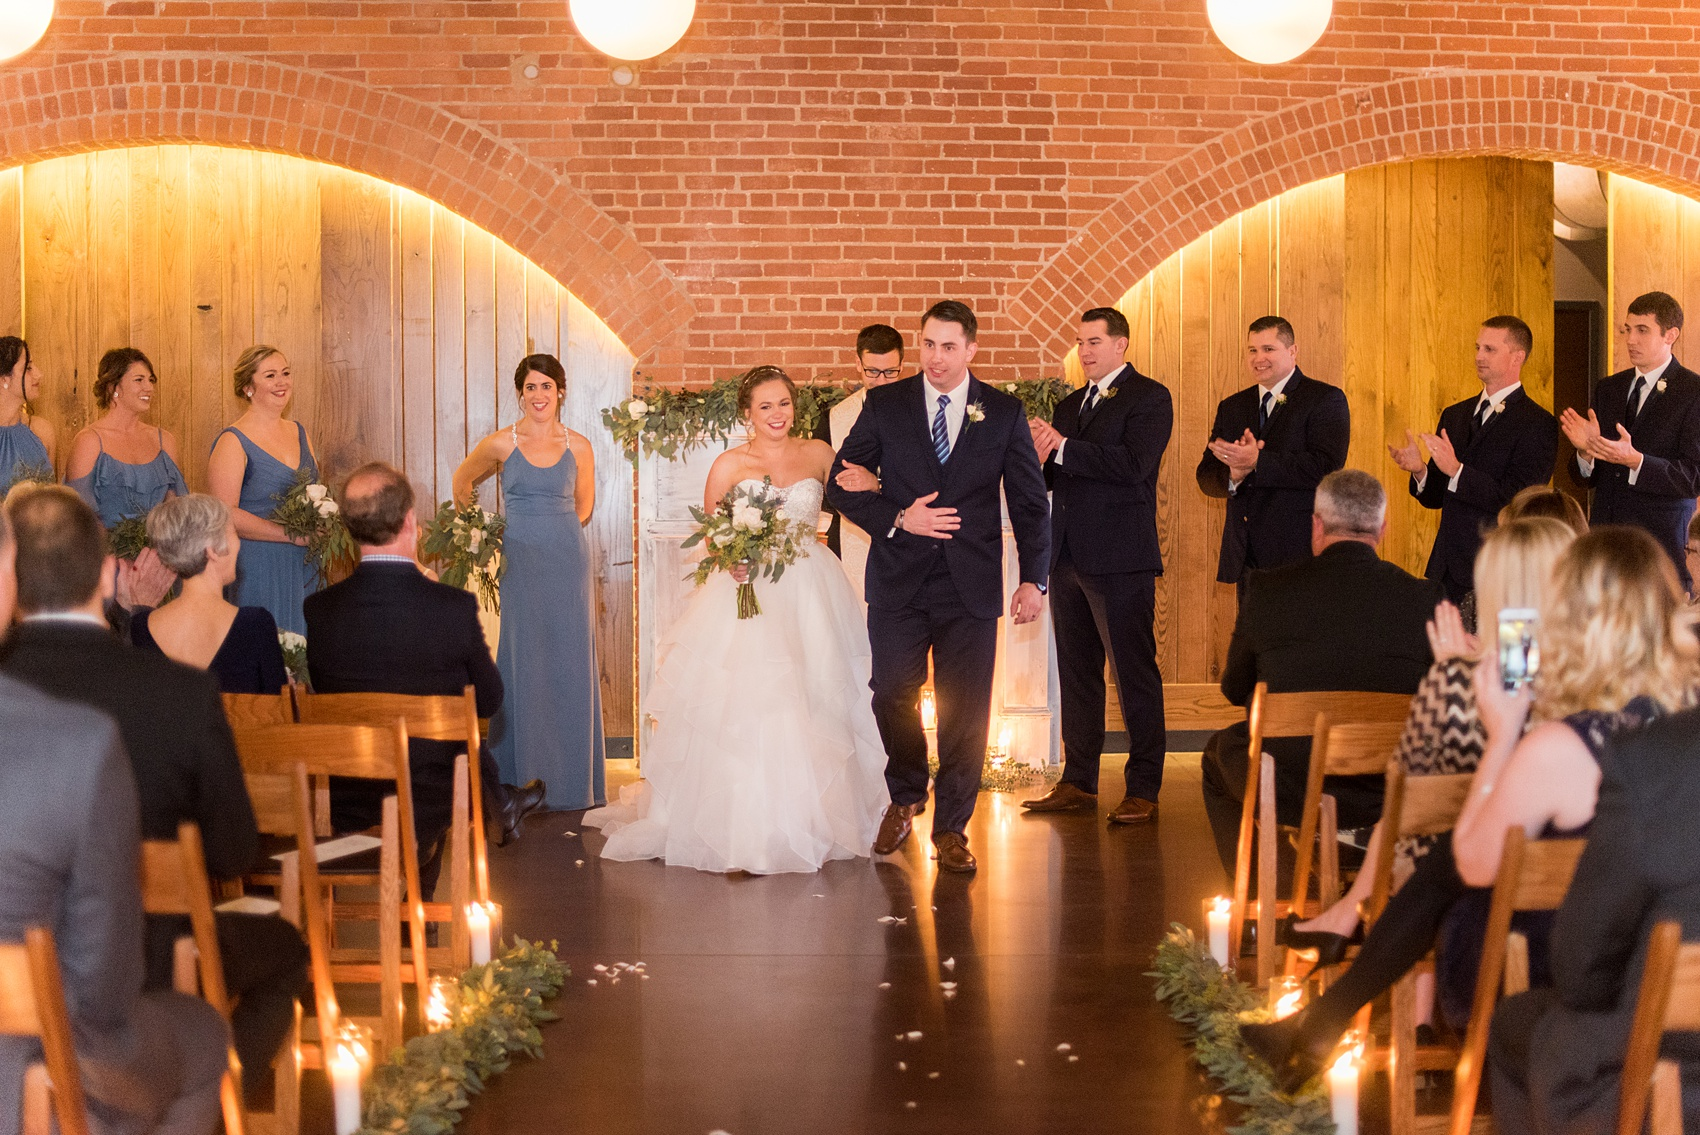 Durham wedding photos at The Cookery by Mikkel Paige Photography in North Carolina. The bride and groom got married in a romantic indoor ceremony during their winter wedding.